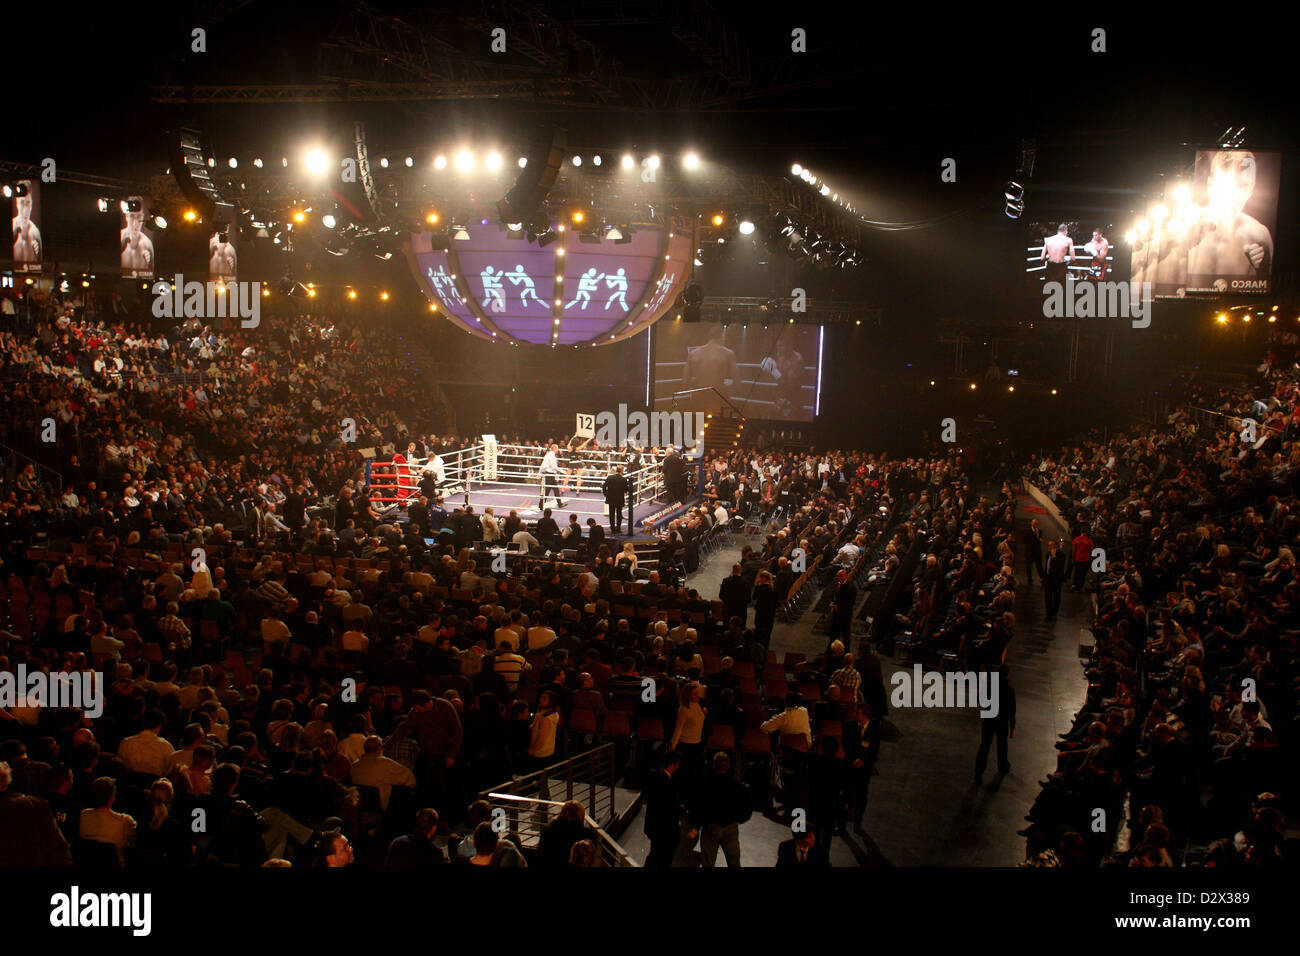 berlin germany boxing in max schmeling halle stockfotos berlin germany boxing in max schmeling. Black Bedroom Furniture Sets. Home Design Ideas